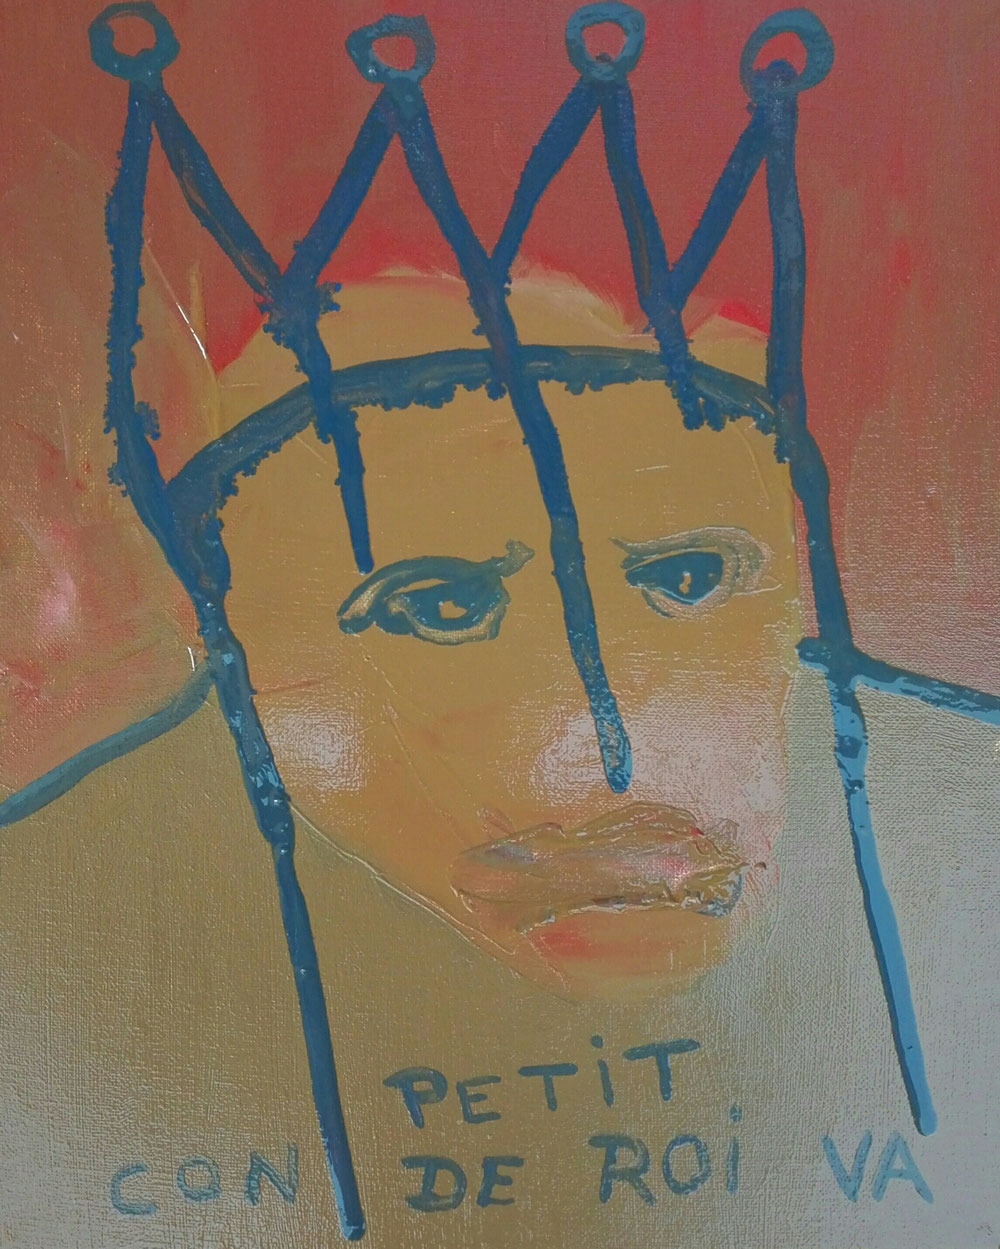 SOLD OUT - 'Petit con de roi' - oil on linen canvas - 2020 - 22x27cm